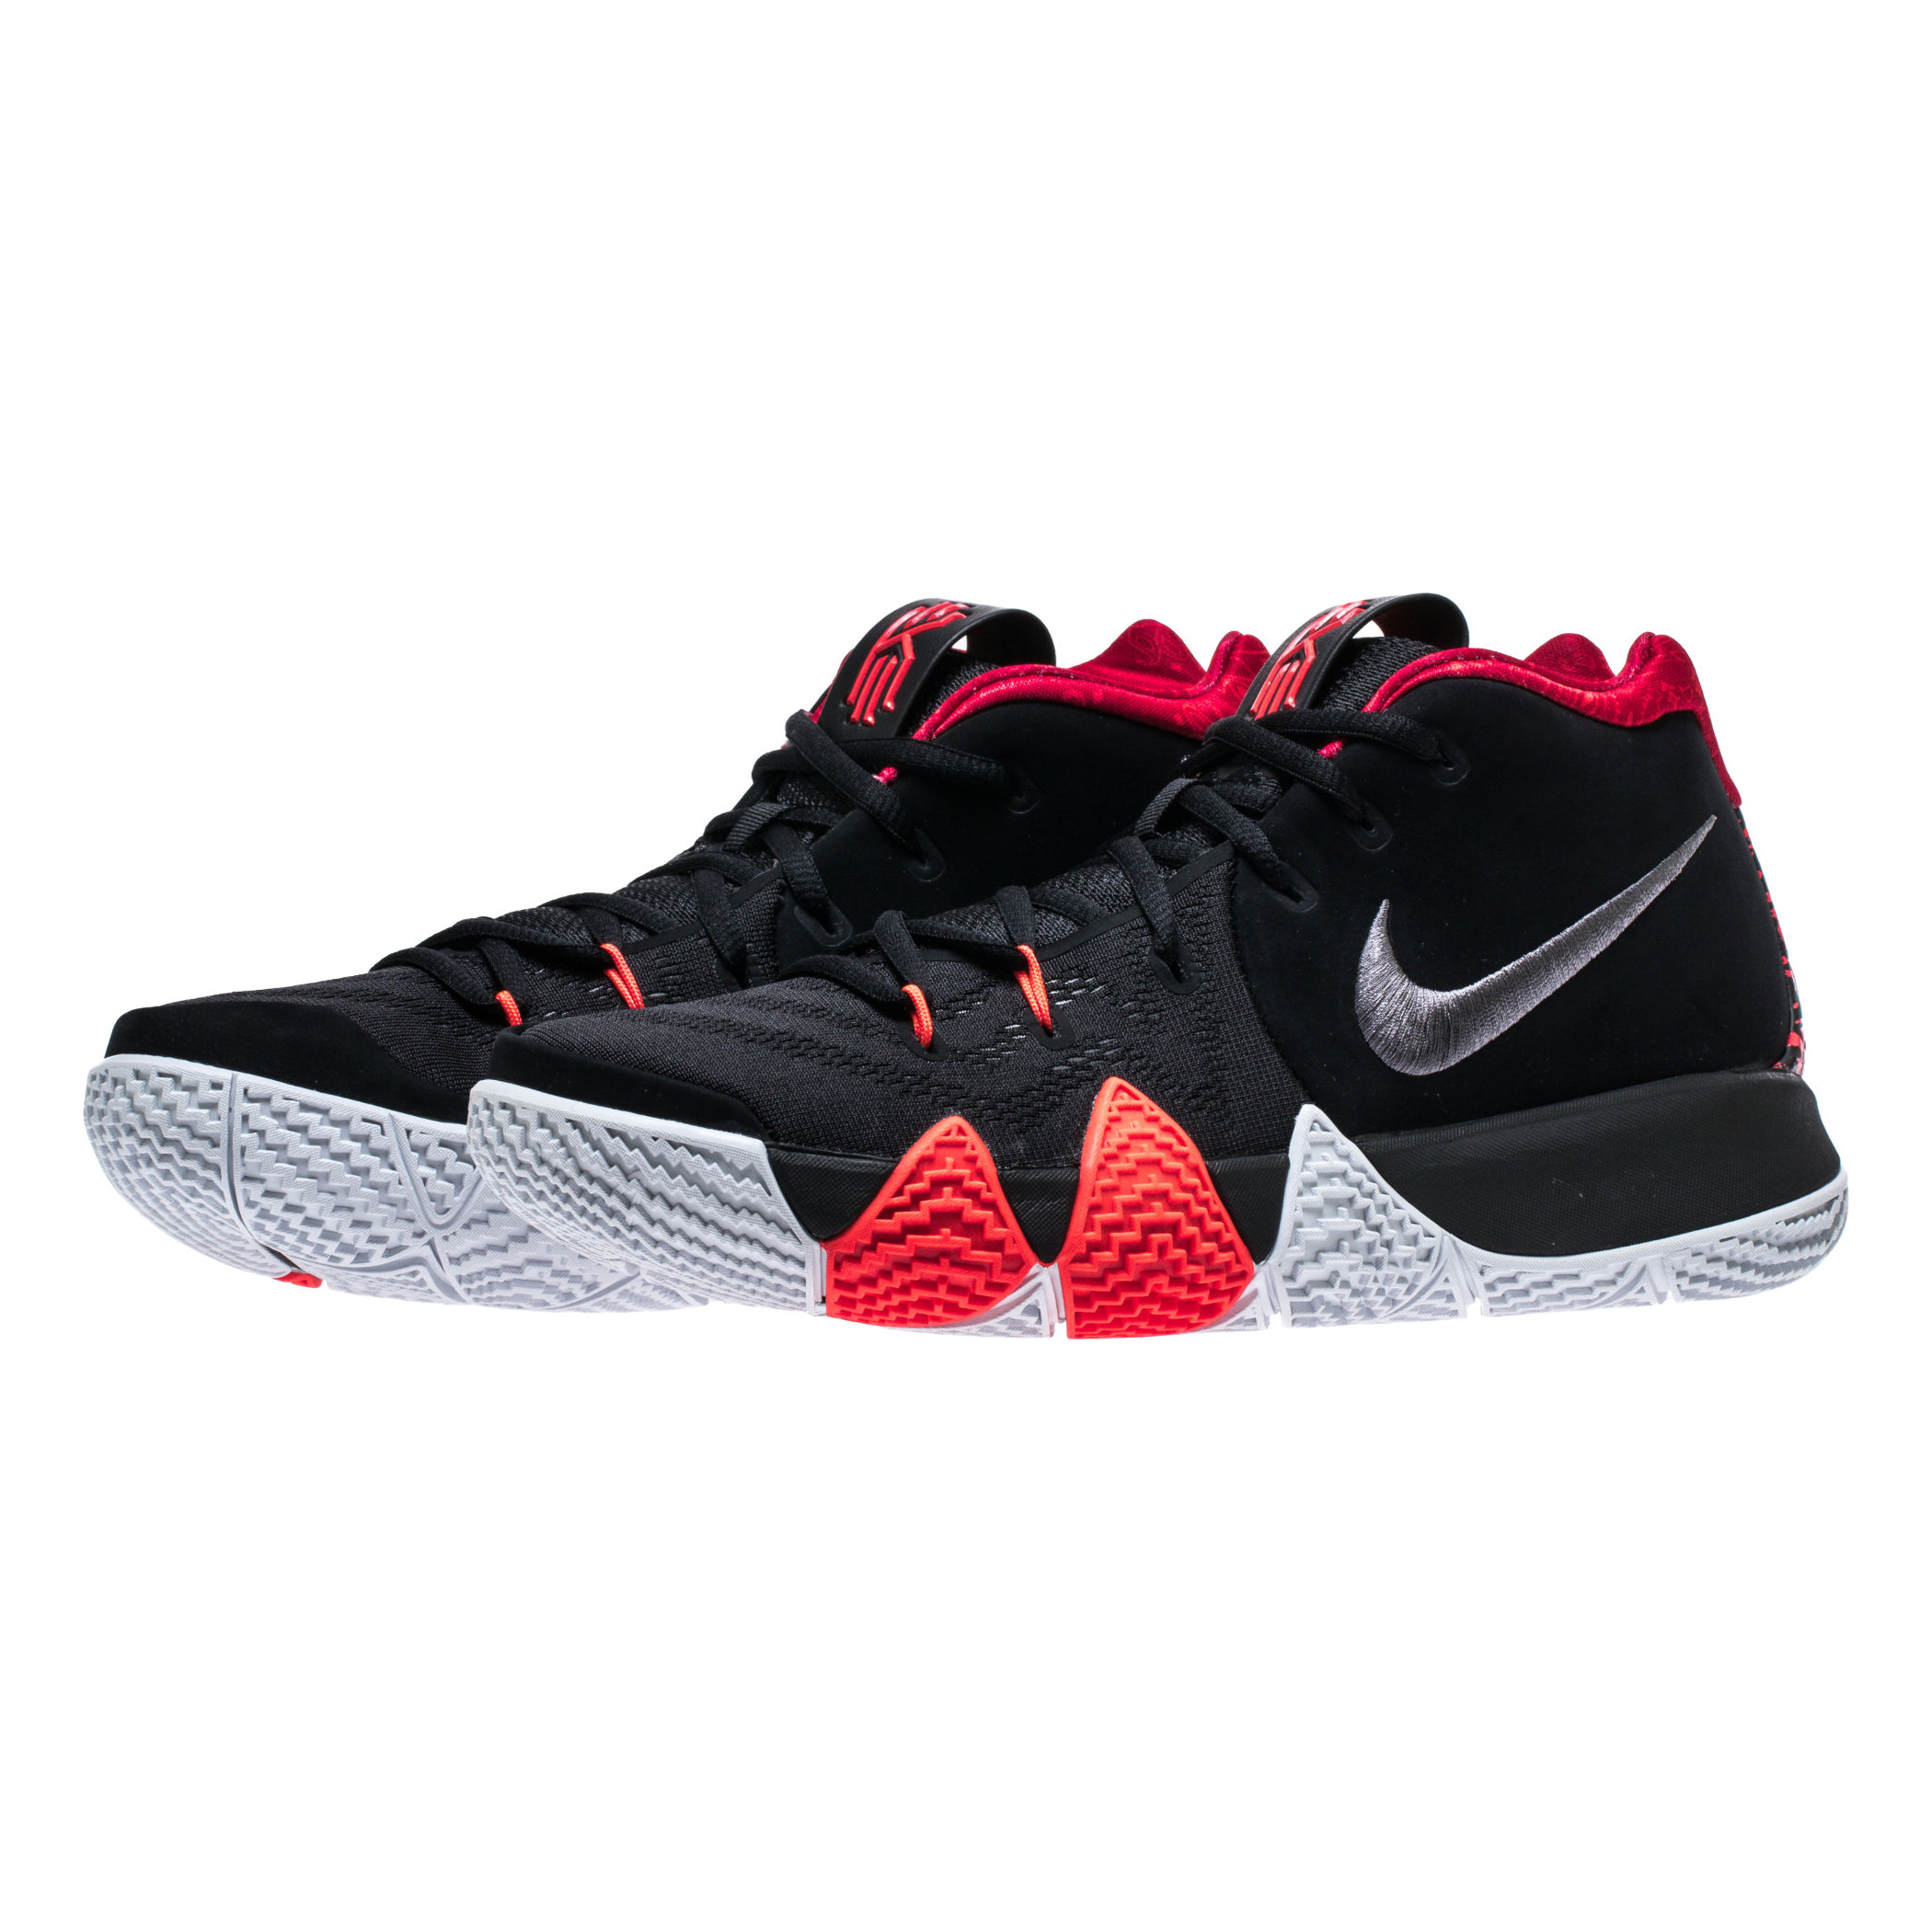 99d18c945546 This Nike Kyrie 4 is Rumored to Celebrate Irving s 41-Point ...